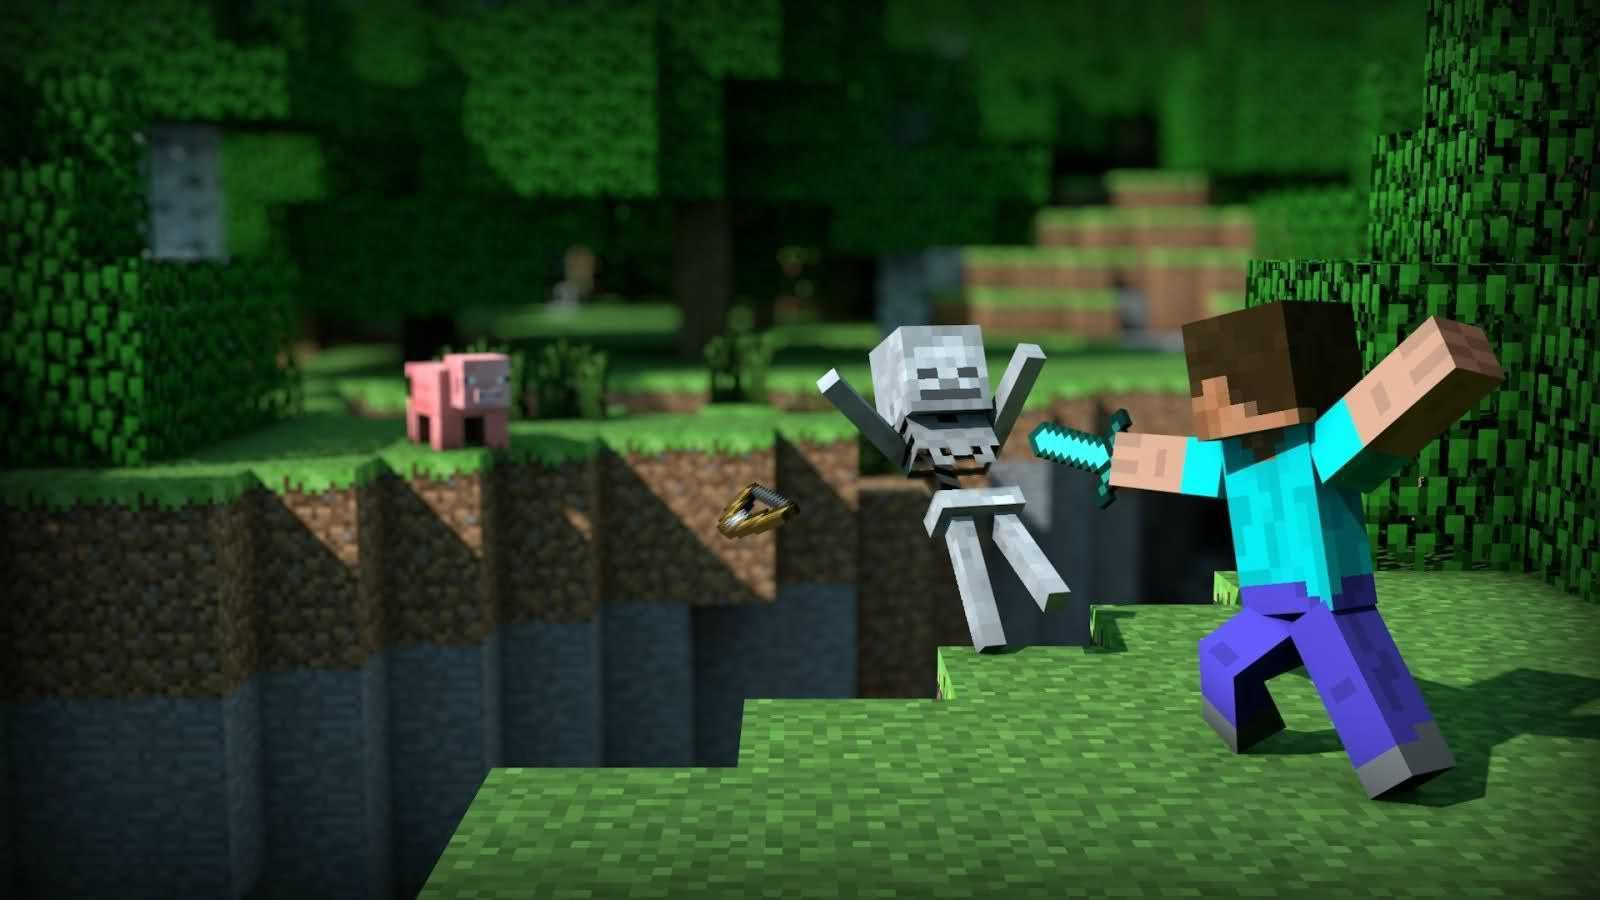 Minecraft Desktop Wallpapers Hd Panda 1600x900PX ~ Wallpapers